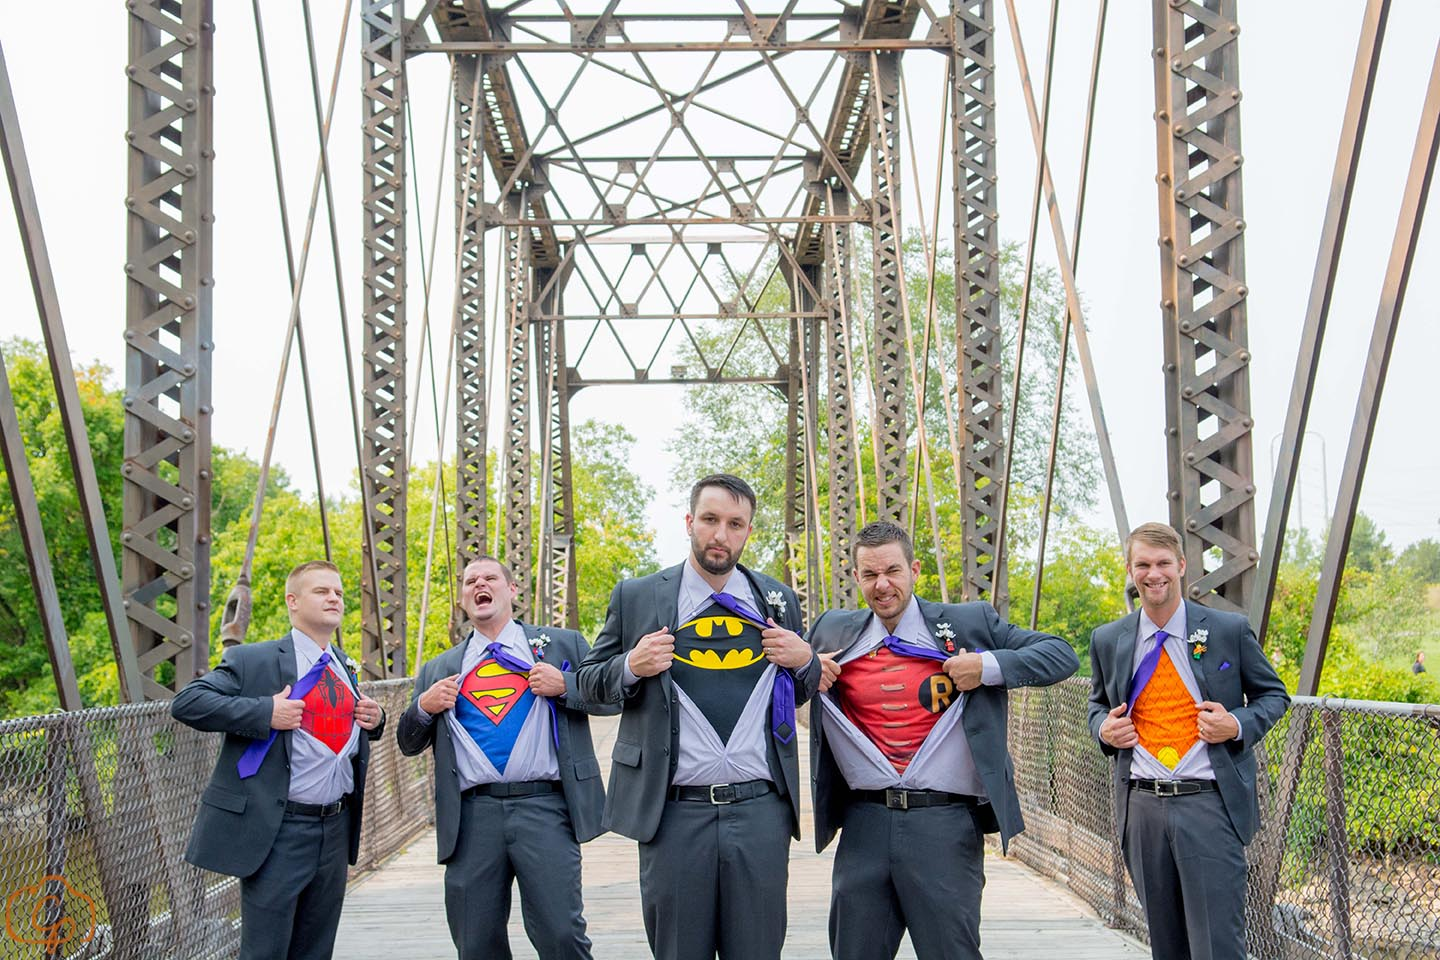 Superhero shirts under the groomsmen button downs | Coppersmith Photography | Minneapolis wedding blog by Sixpence Events